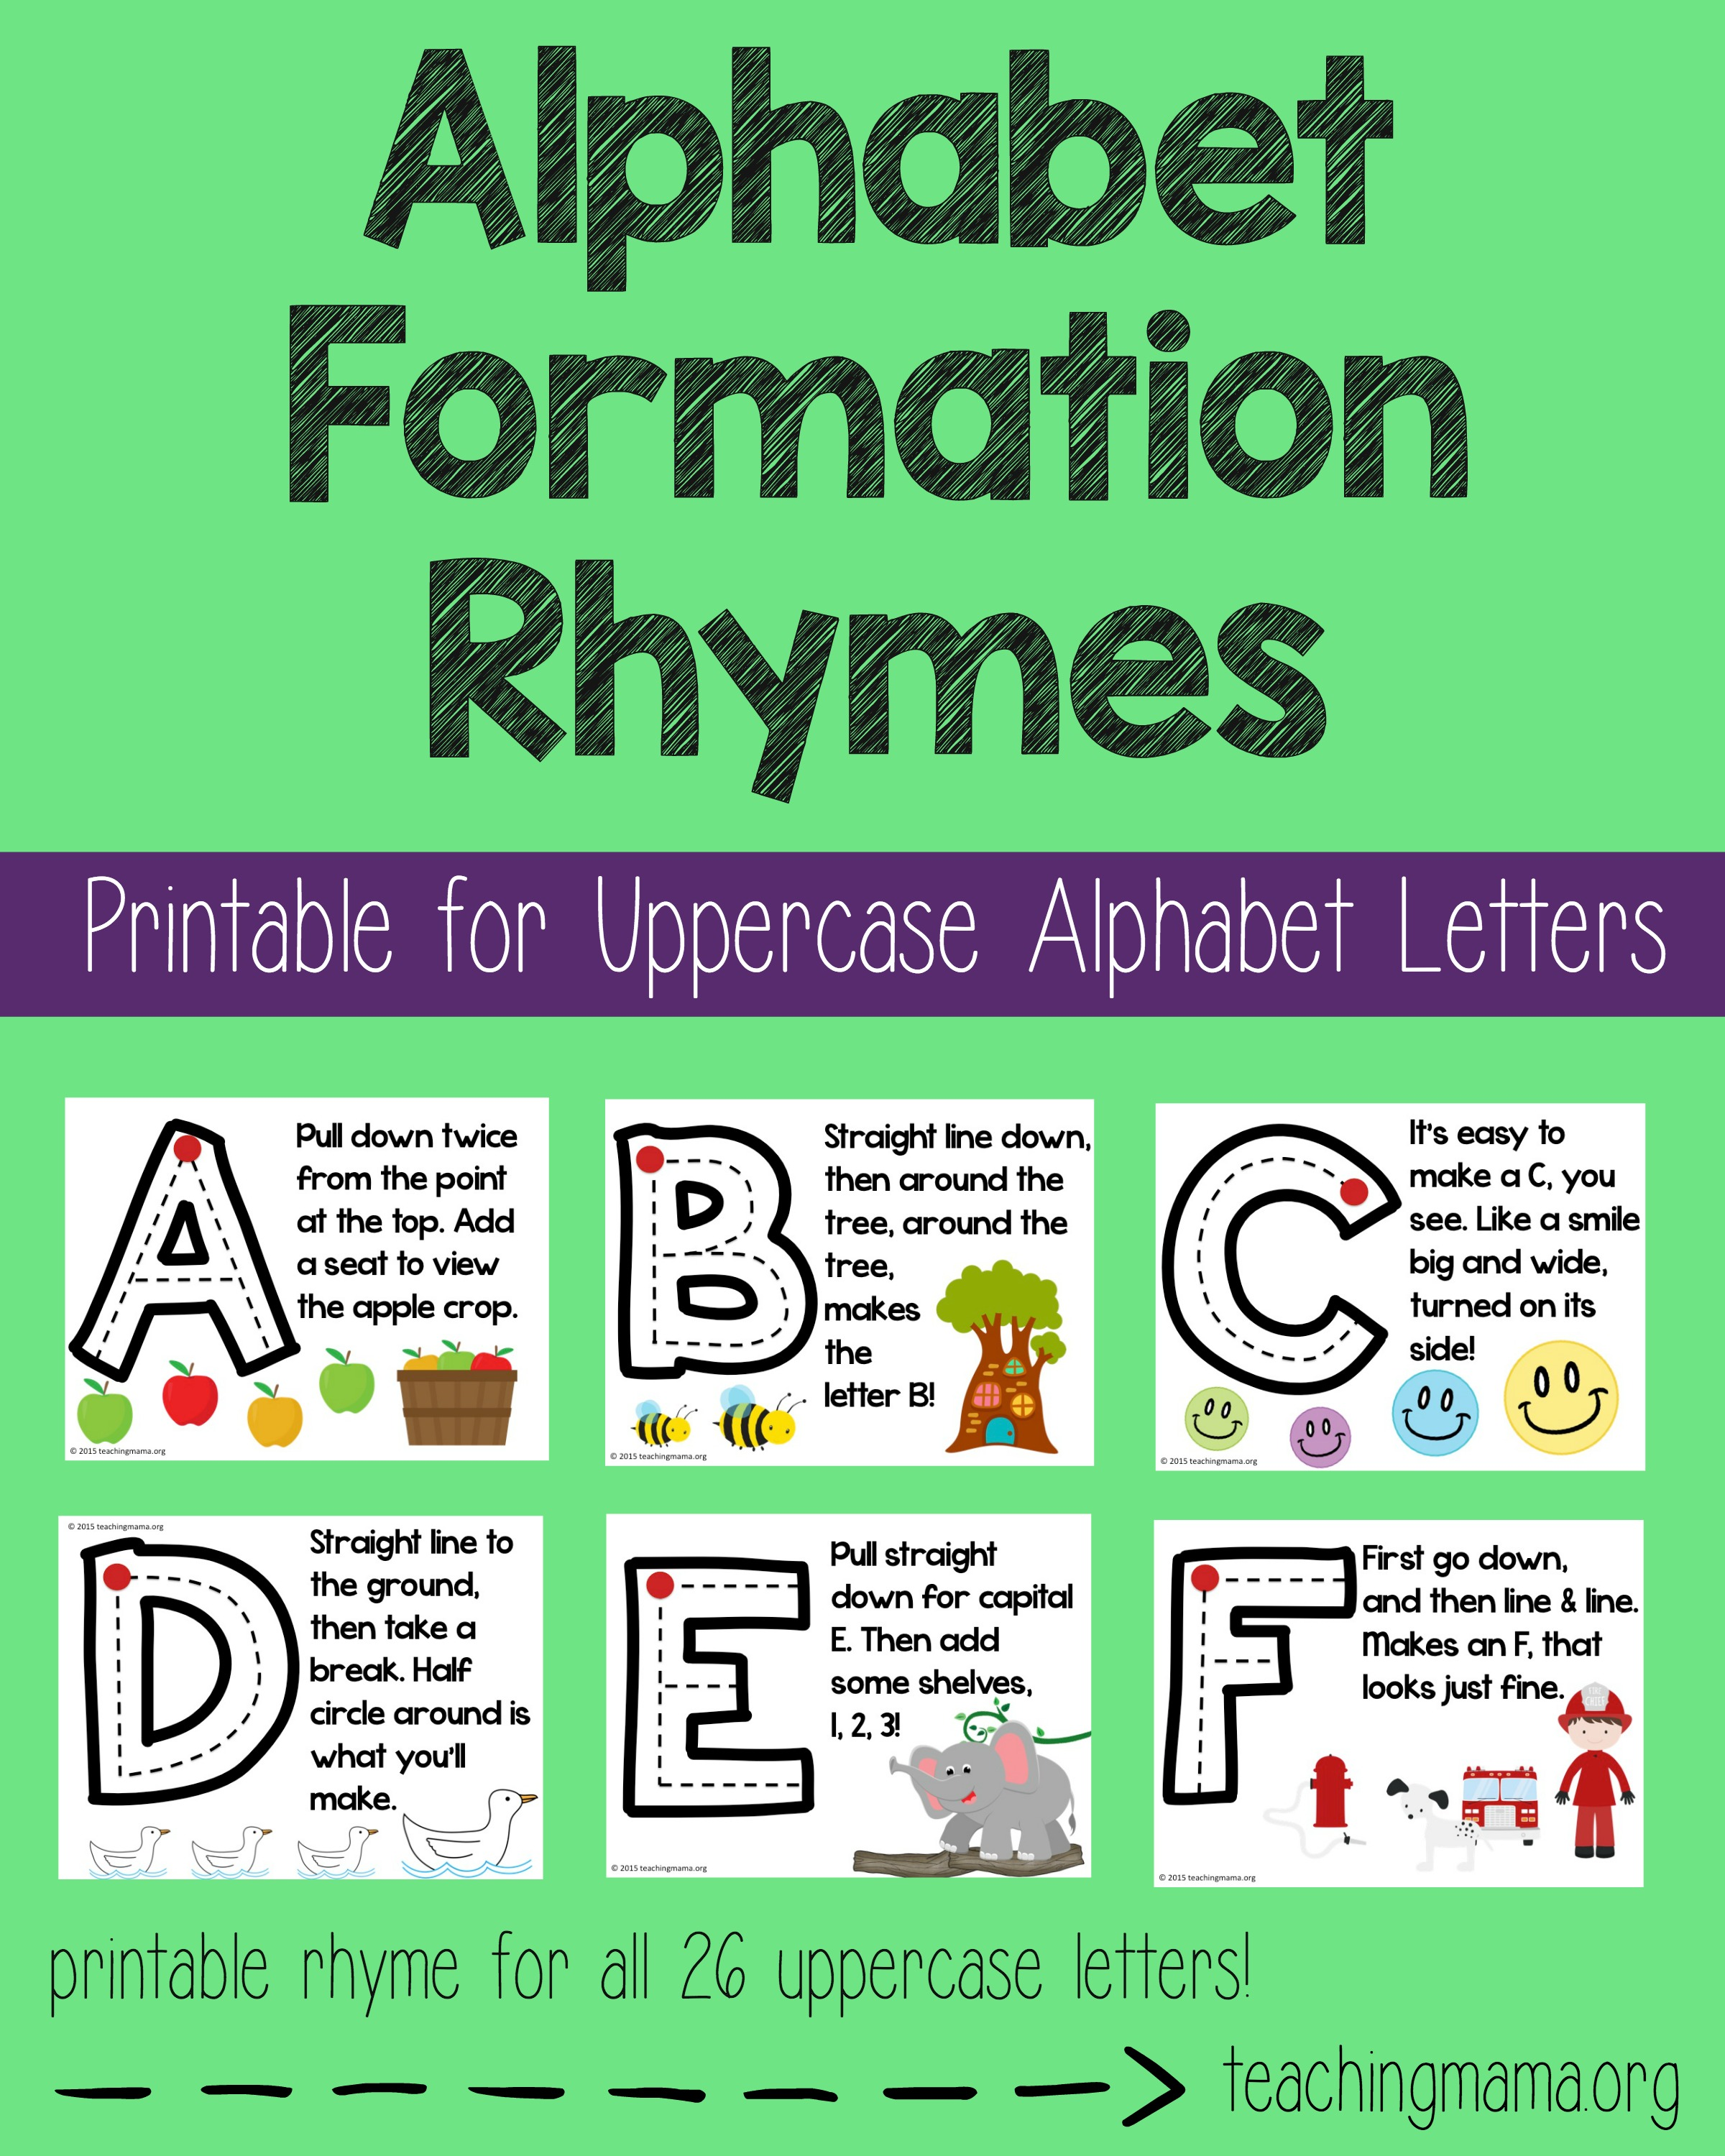 5 Ways to Teach the Alphabet Teaching Mama